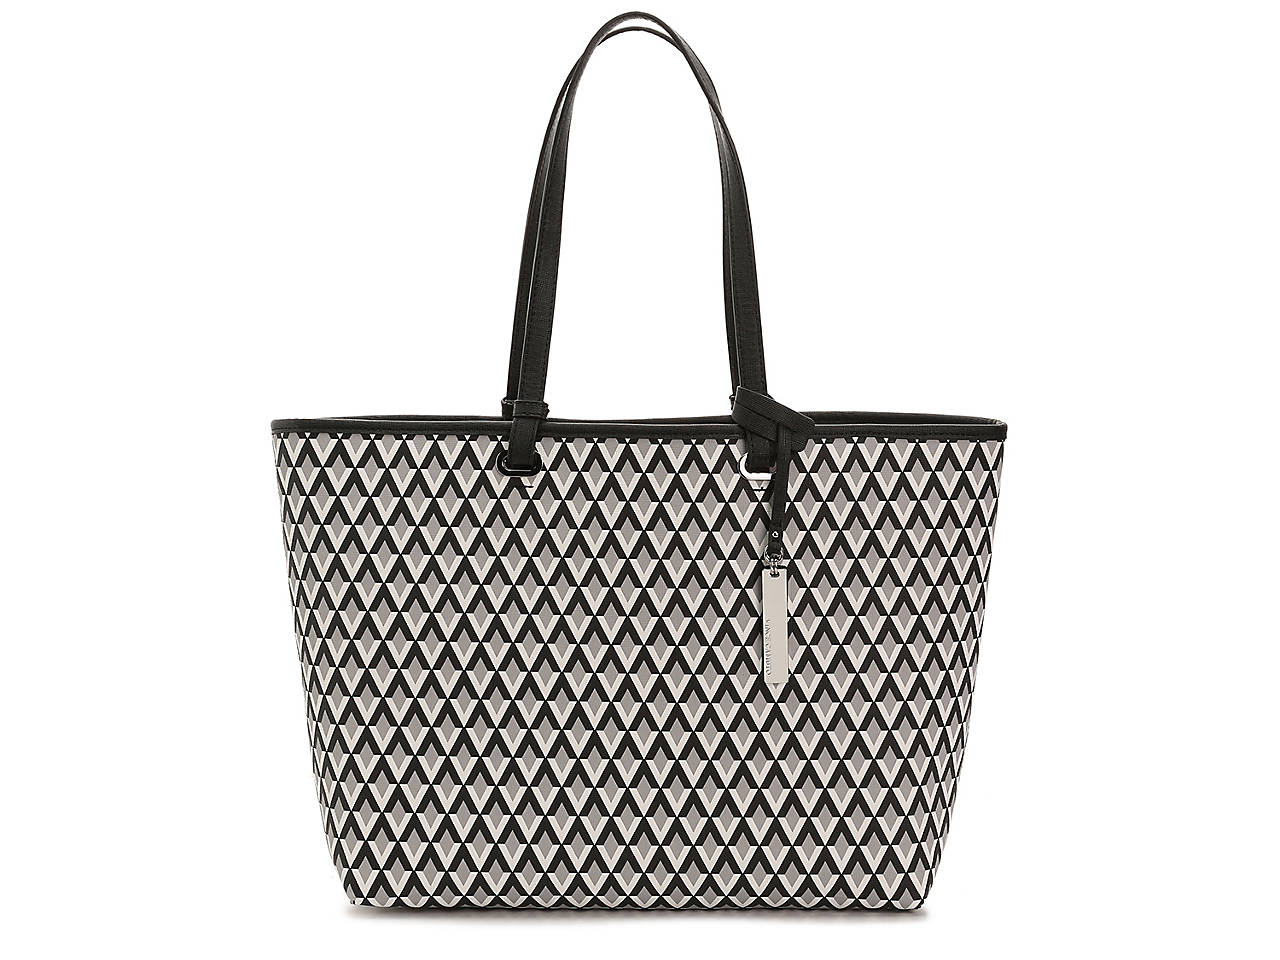 a51a15c1a2 Vince Camuto Linn Leather Tote Women's Handbags & Accessories | DSW